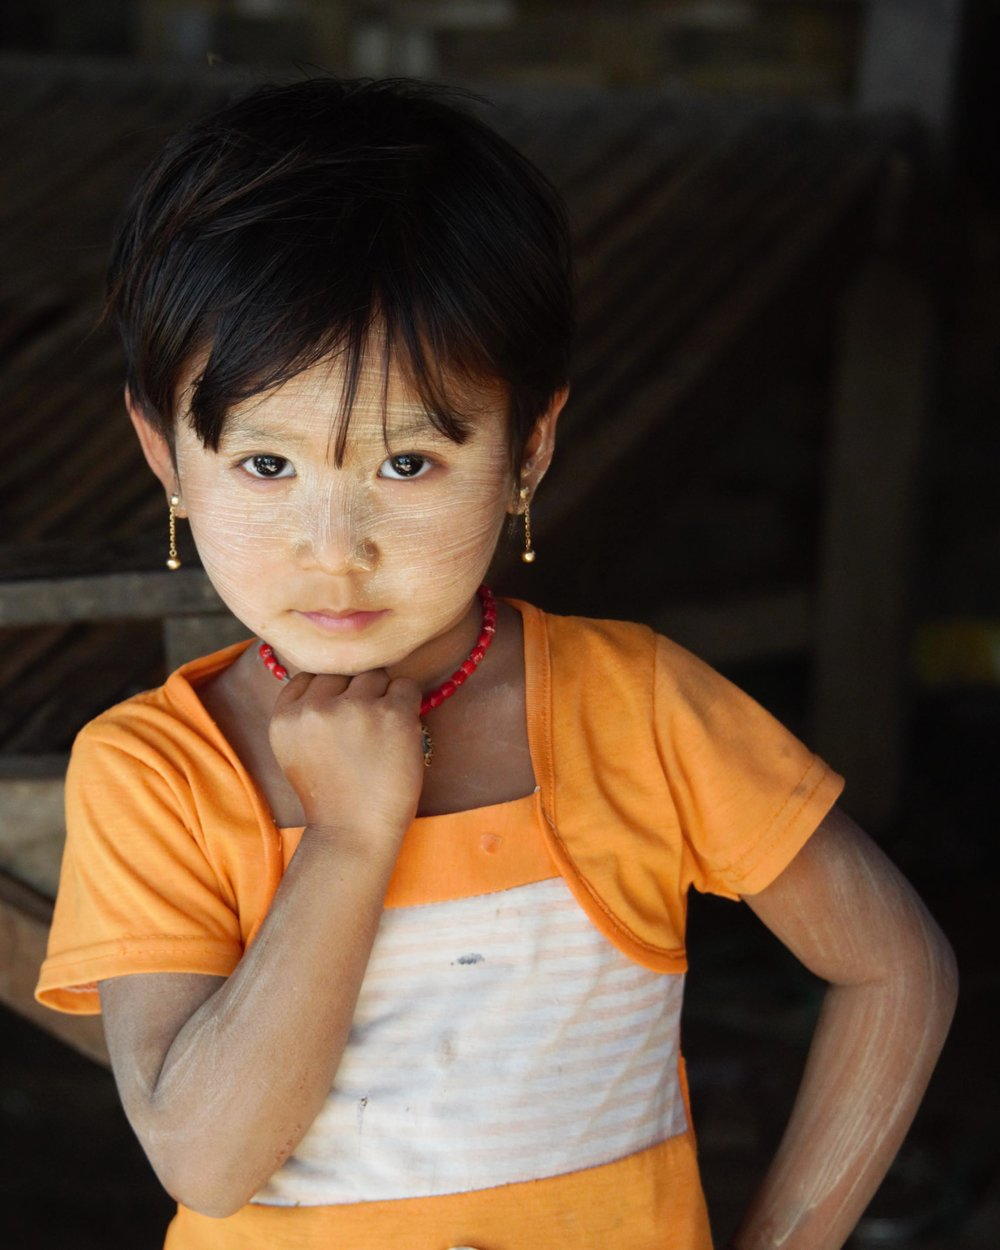 Village girl poses, rural village, Myanmar